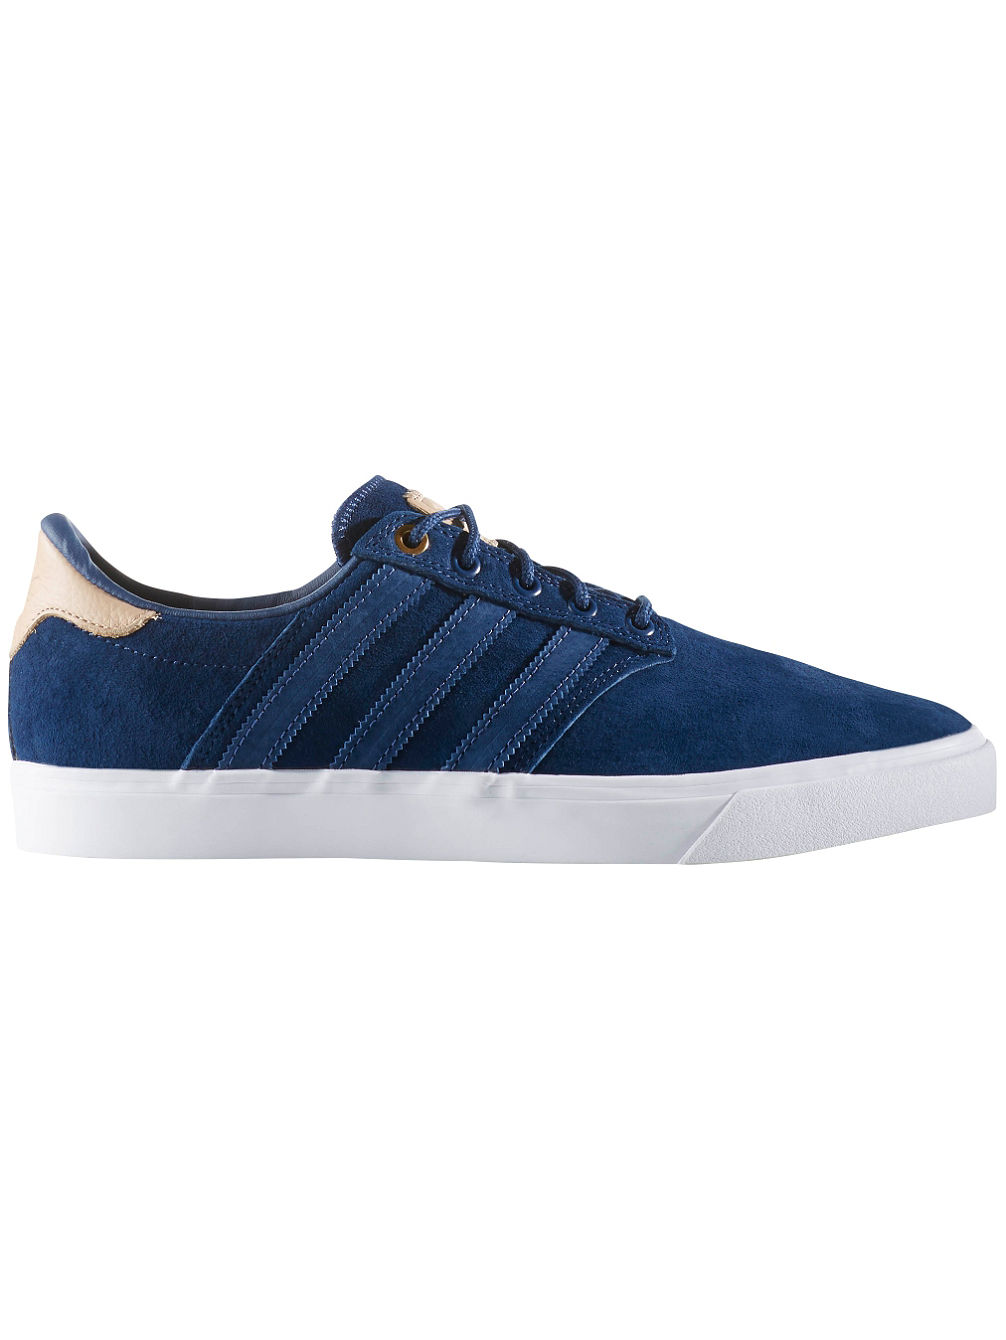 adidas-skateboarding-seeley-premiere-classified-skate-shoes